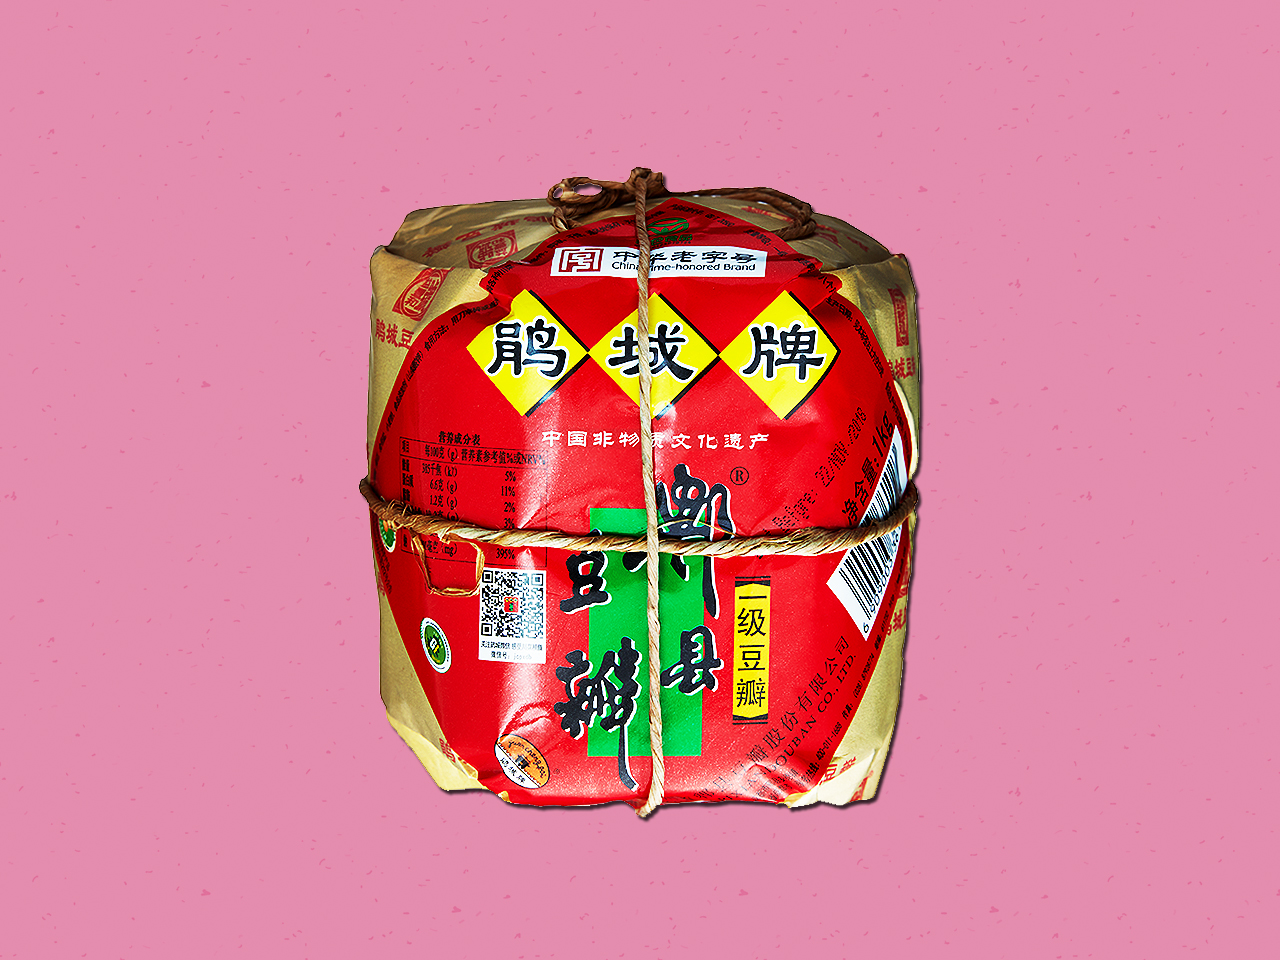 Package of doubanjiang bean paste